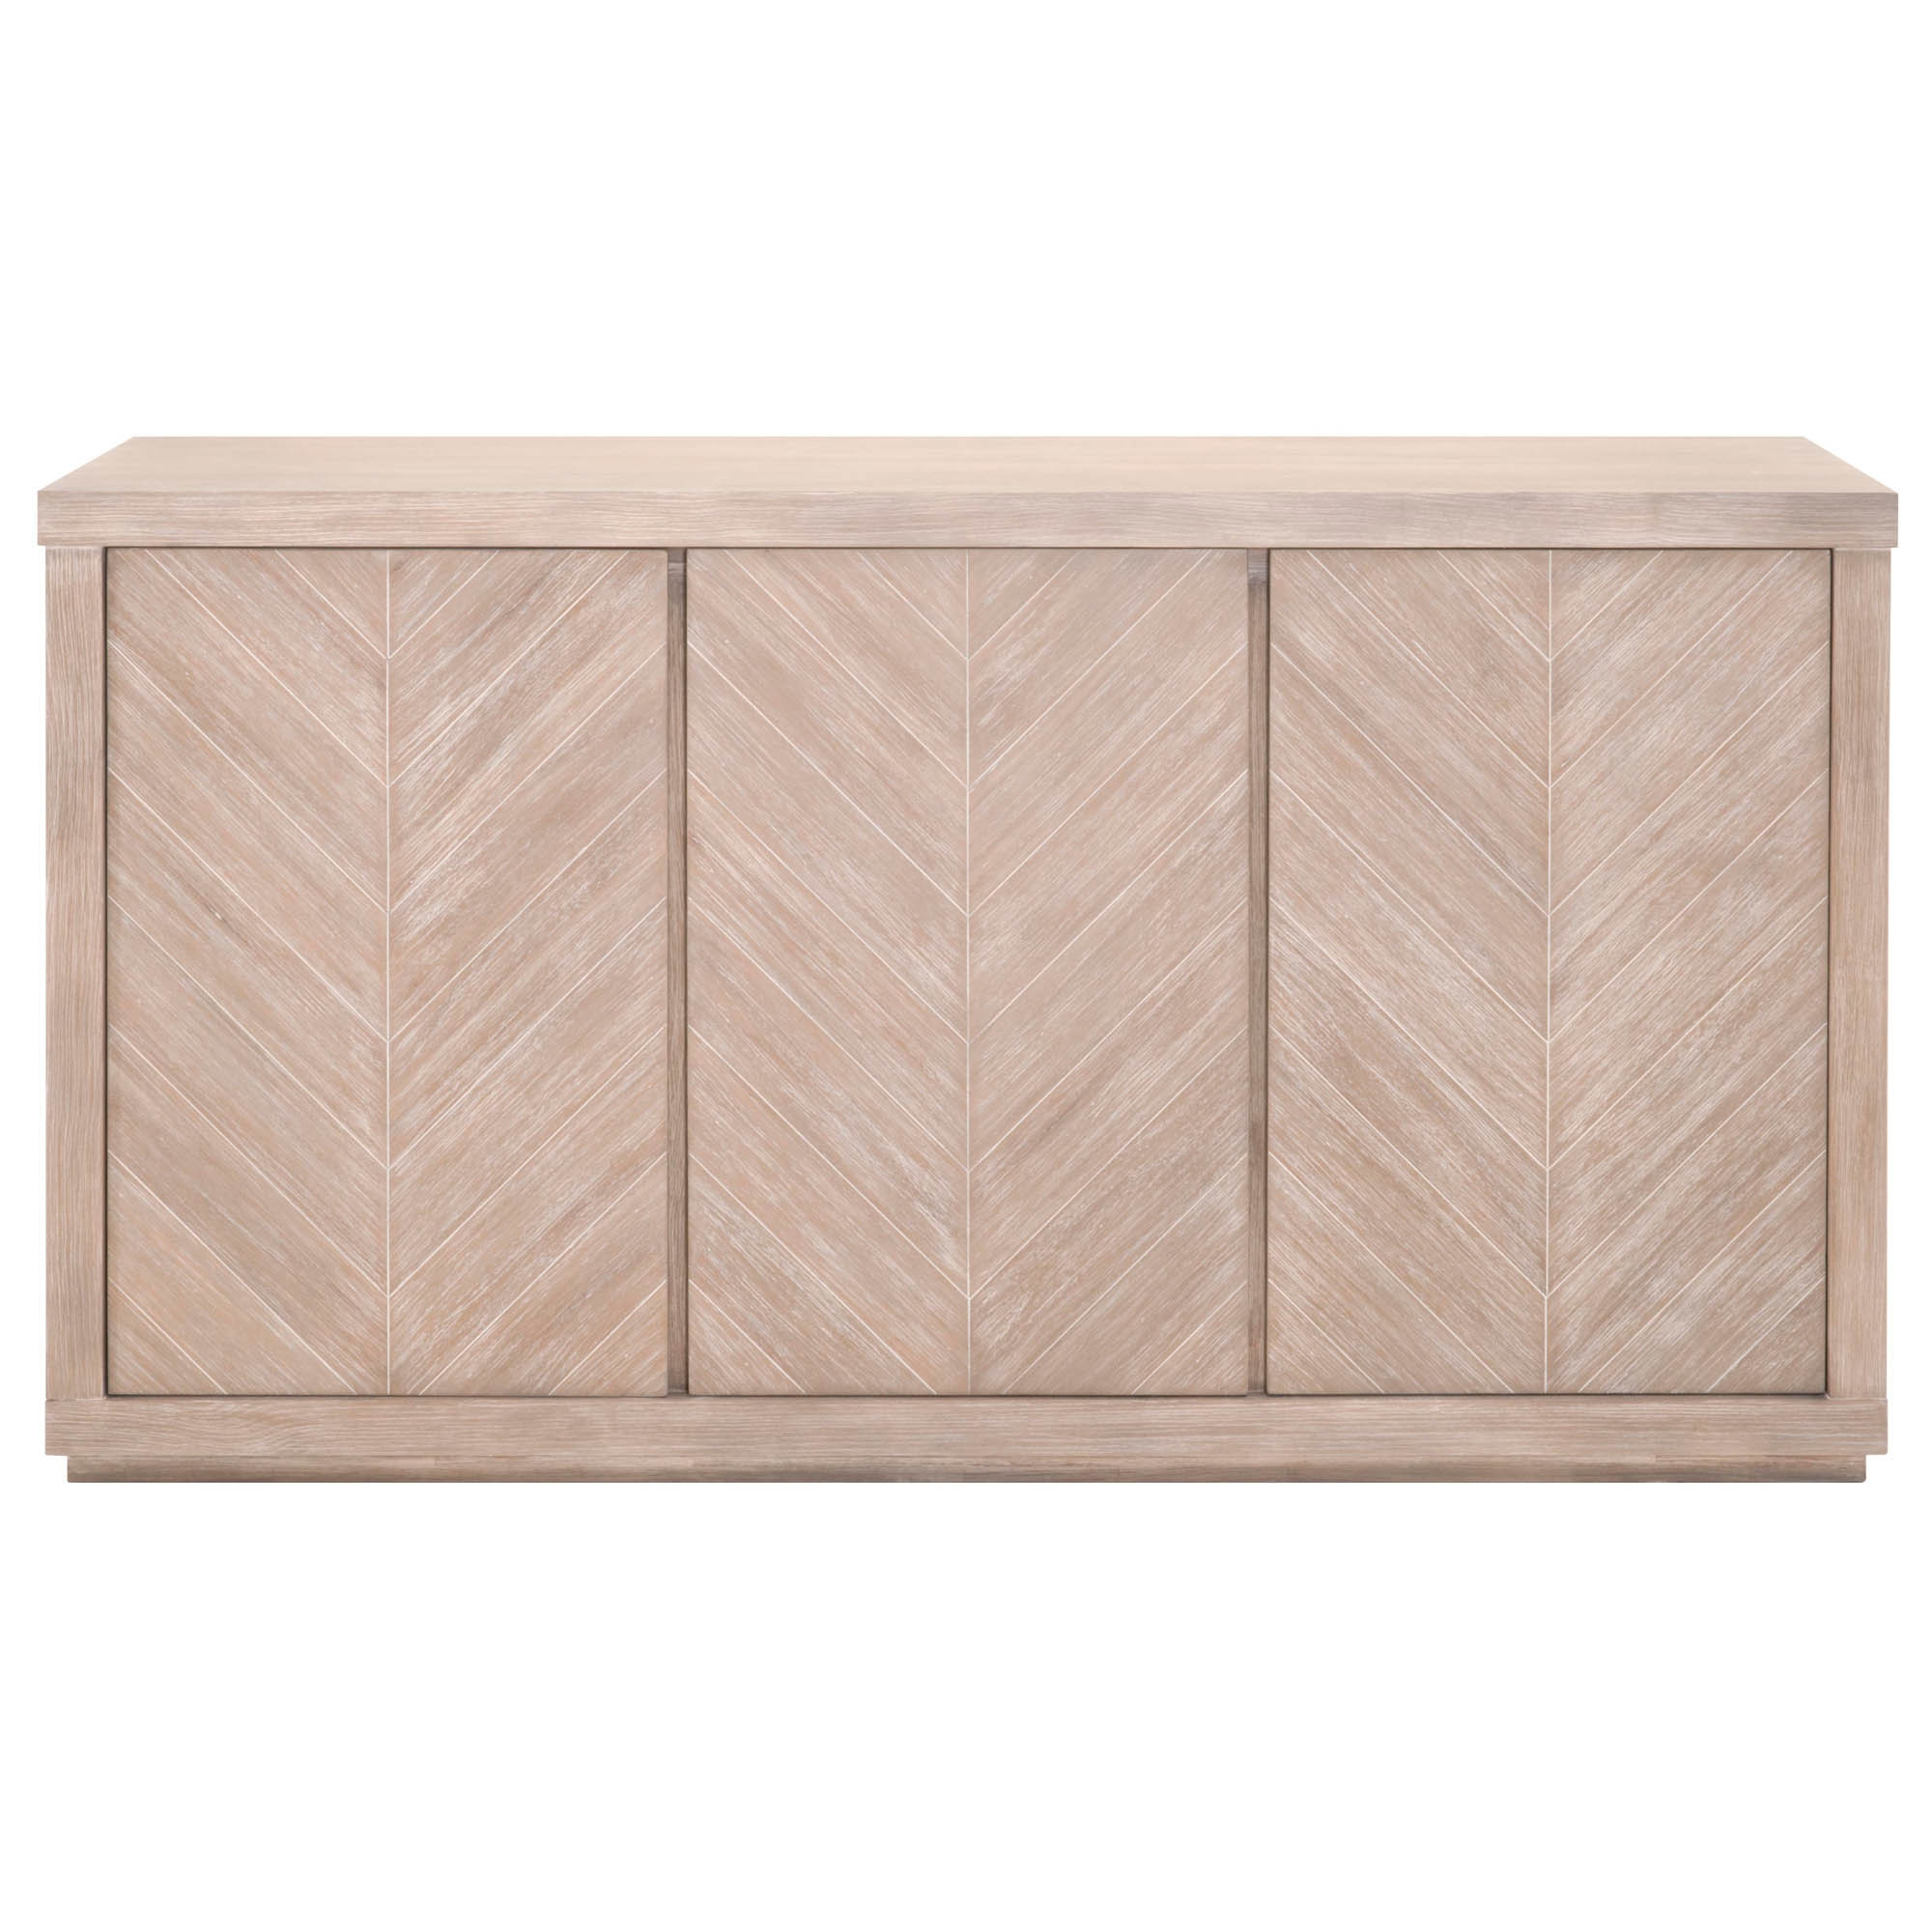 Candelabra Home Adler Media Sideboard | Products In 2019 In Most Popular Upper Stanton Sideboards (#2 of 20)